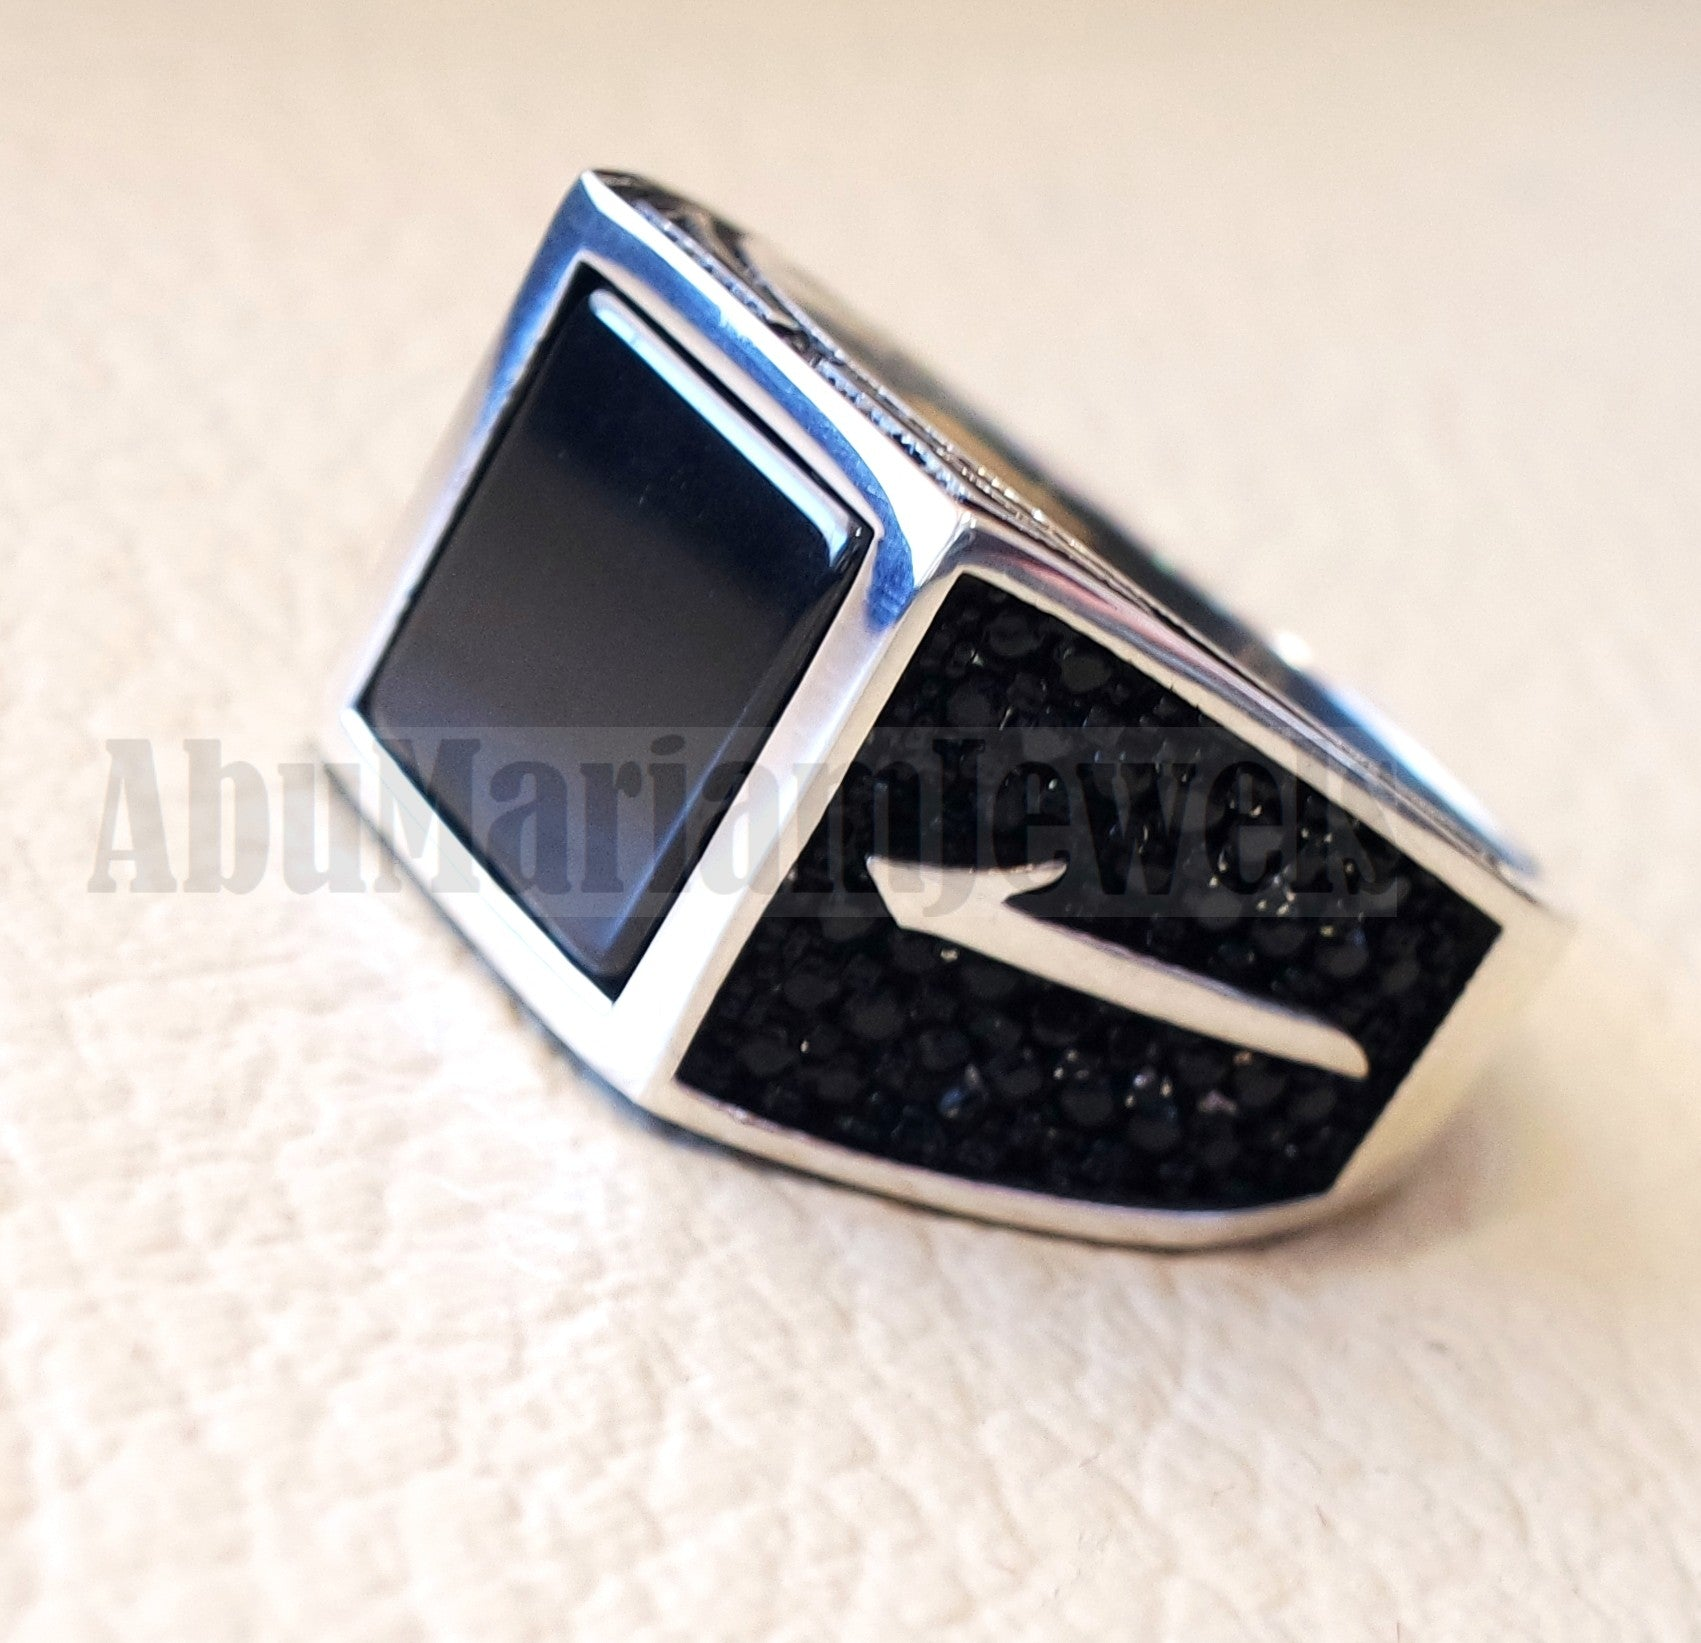 Square Alif Arabic Abjad stunning black onyx man ring sterling silver and black cubic zircon micro setting on sides natural flat gem الف عربي